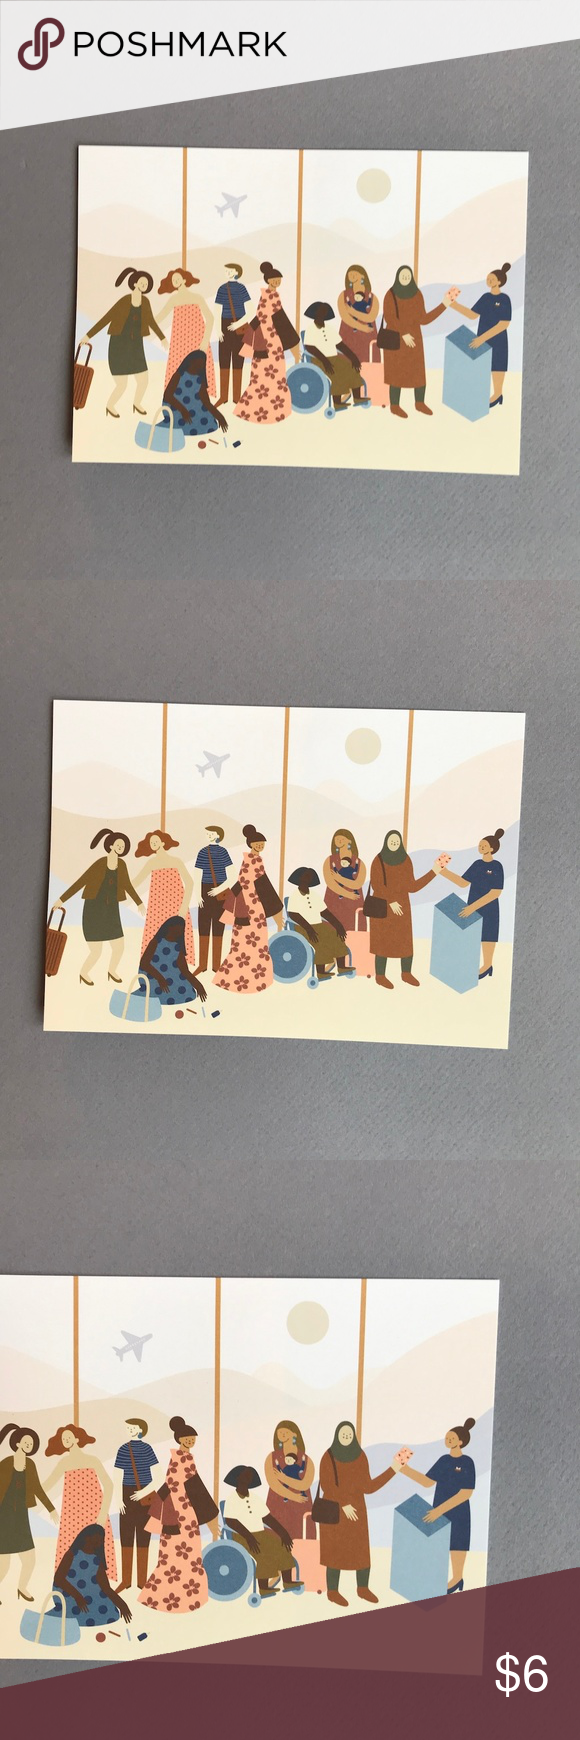 Framable Art/ Post Card Minerva Gonzales Martinez Framable Art Card/ Post Card Minerva Gonzales Martinez 5 x 7 inches Exclusively for Causebox Printed in Los Angeles, CA From Fall 2019 Causebox Value $10